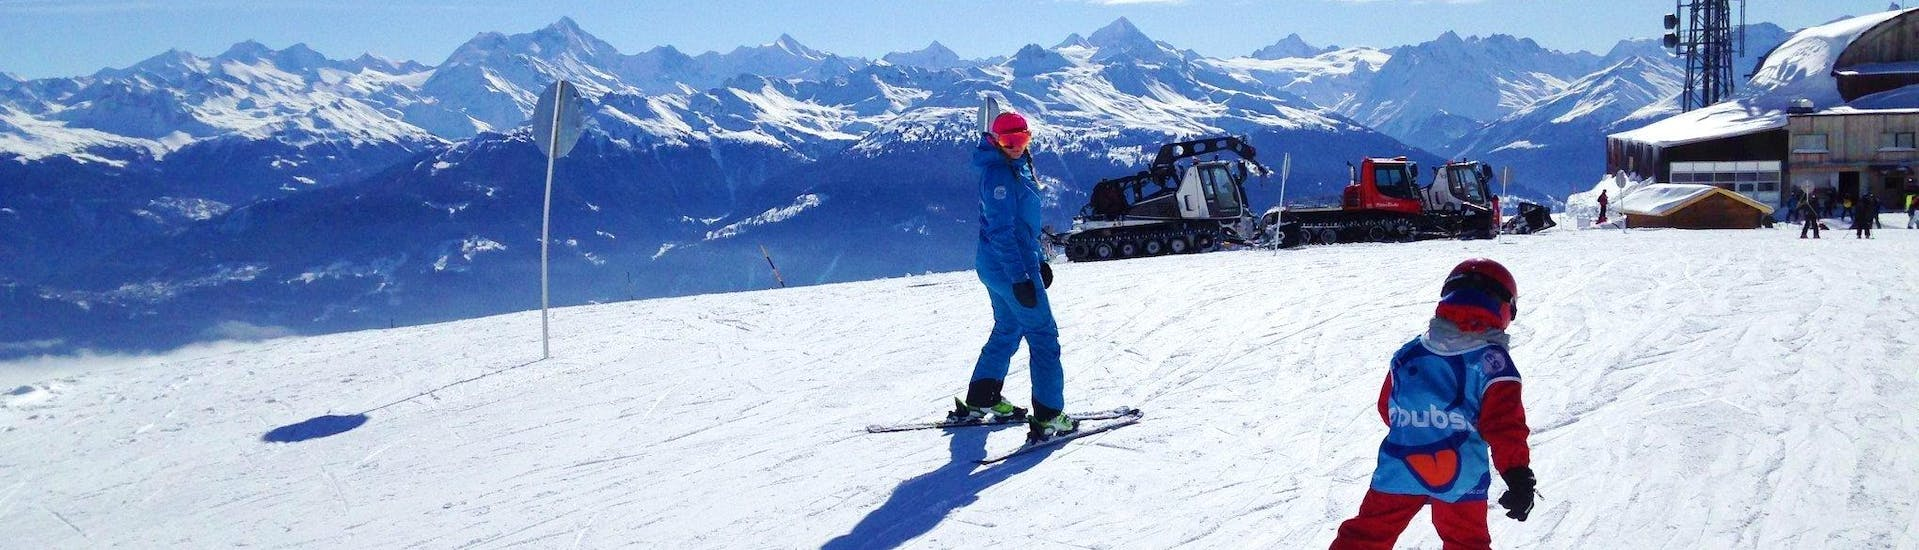 private-ski-lessons-for-kids-2-5-years-esi-glycerine-anzere-hero